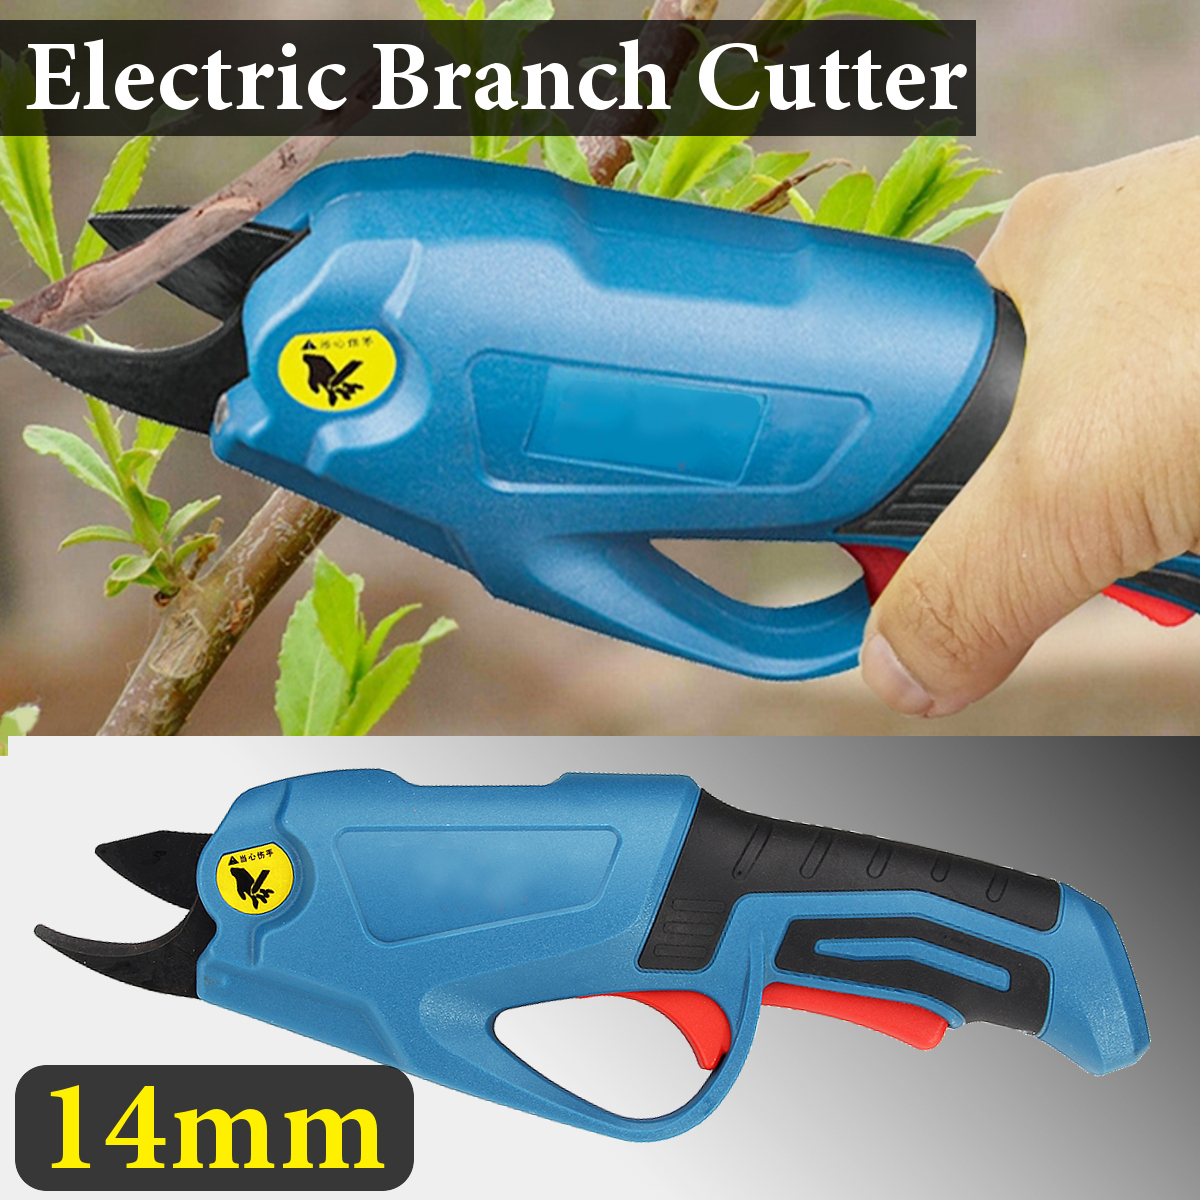 2Ah 4V Garden Power Tools 3.6V Li-ion Battery Cordless Secateur Branch Cutter Electric Fruit Cordless Shear Pruning Tool Blue